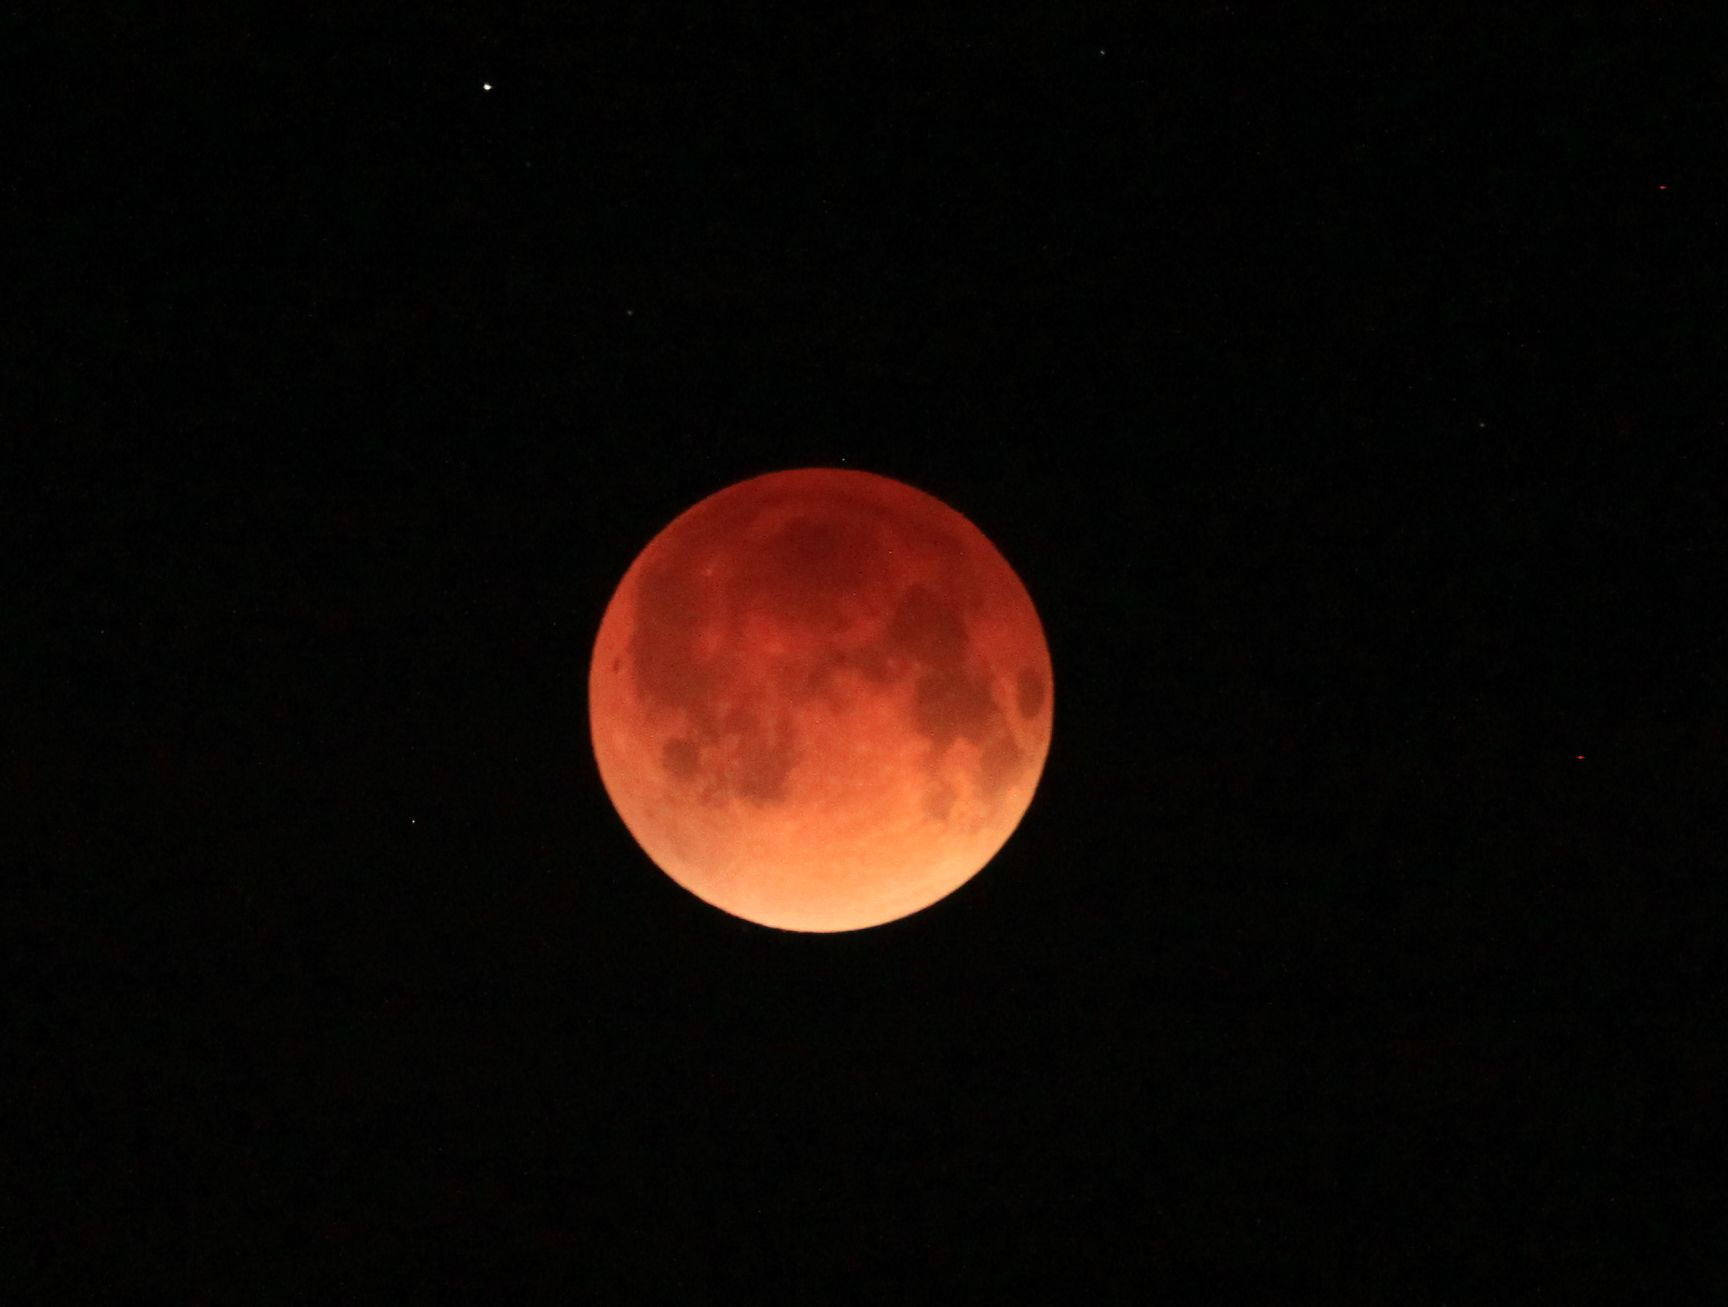 Eclipse Lunar Total - Miami, Abril 15 '14 03:54 UT